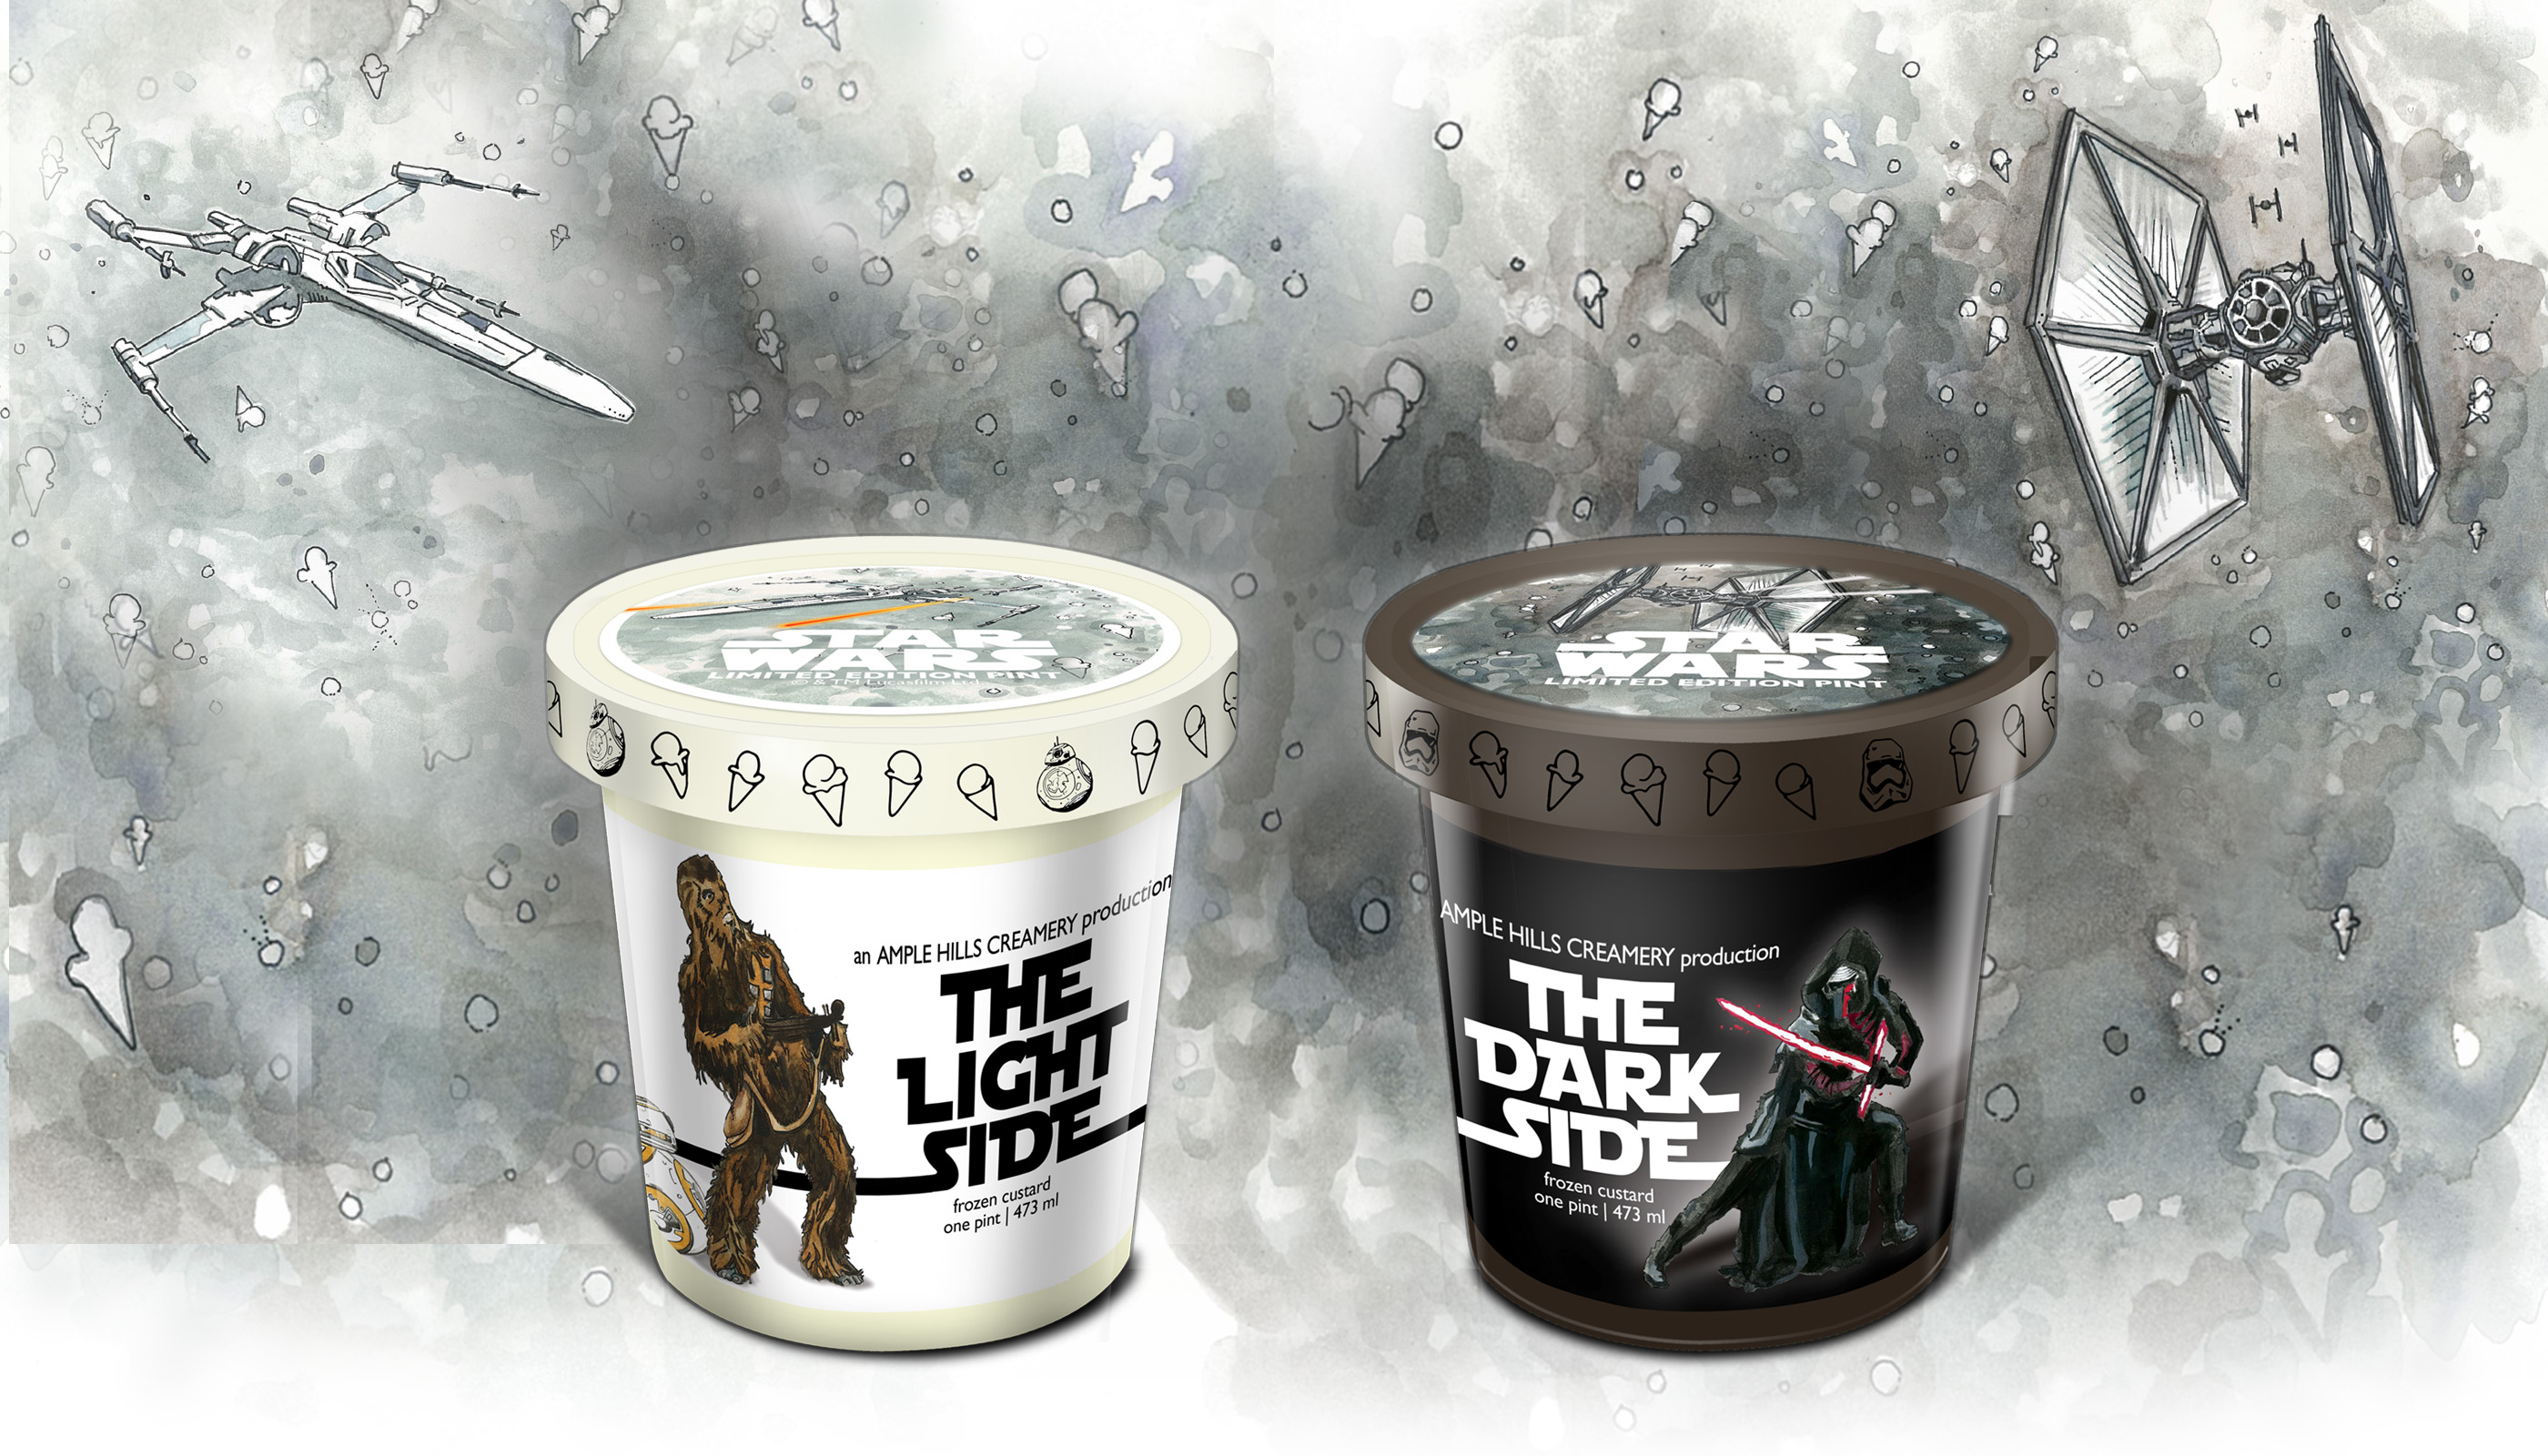 Ample Hills Creamery limited edition Star Wars ice cream flavors